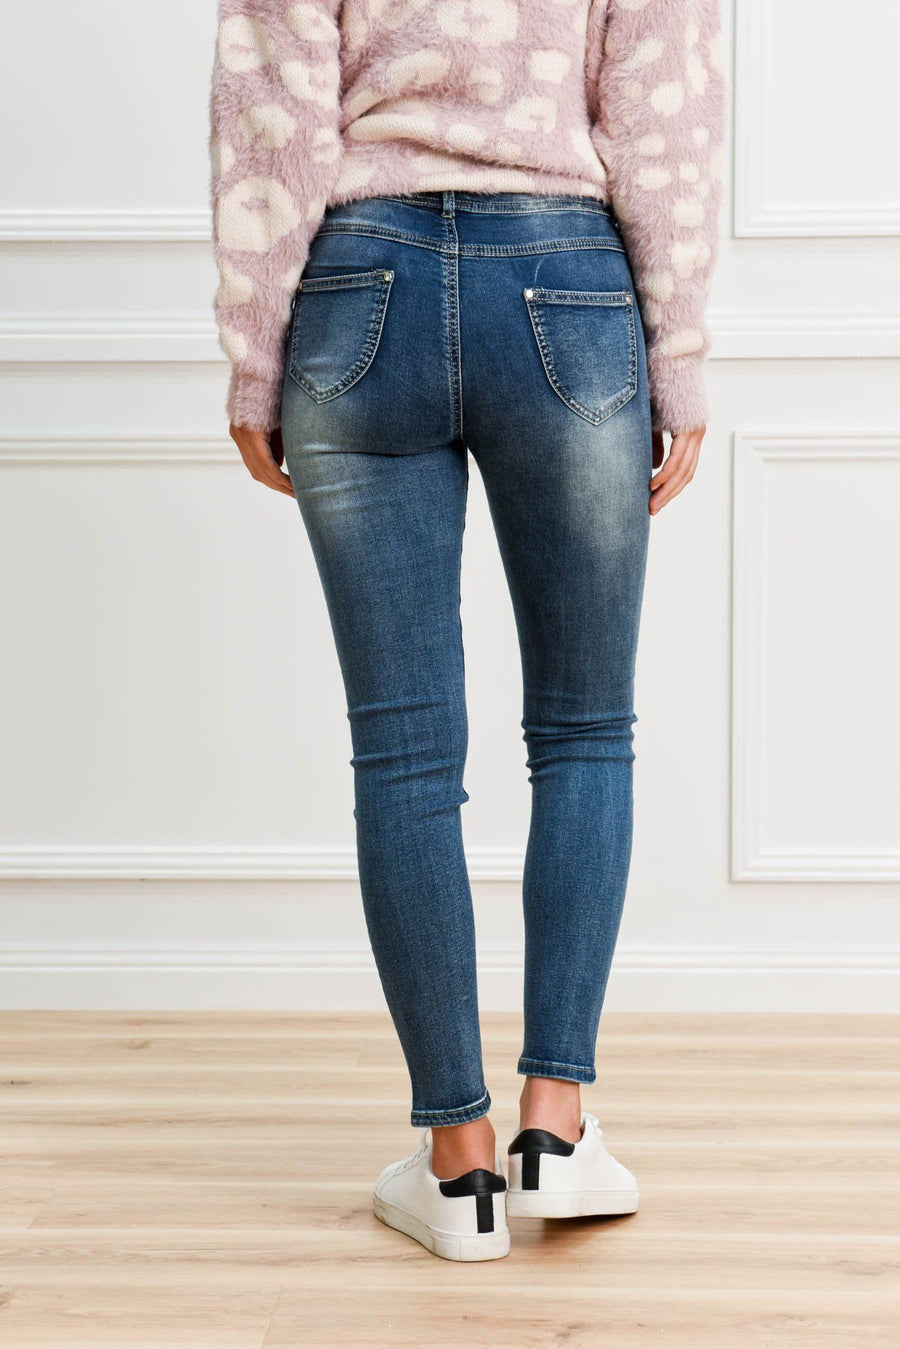 Amyra Pull Up Jean Jeans Gray.Label